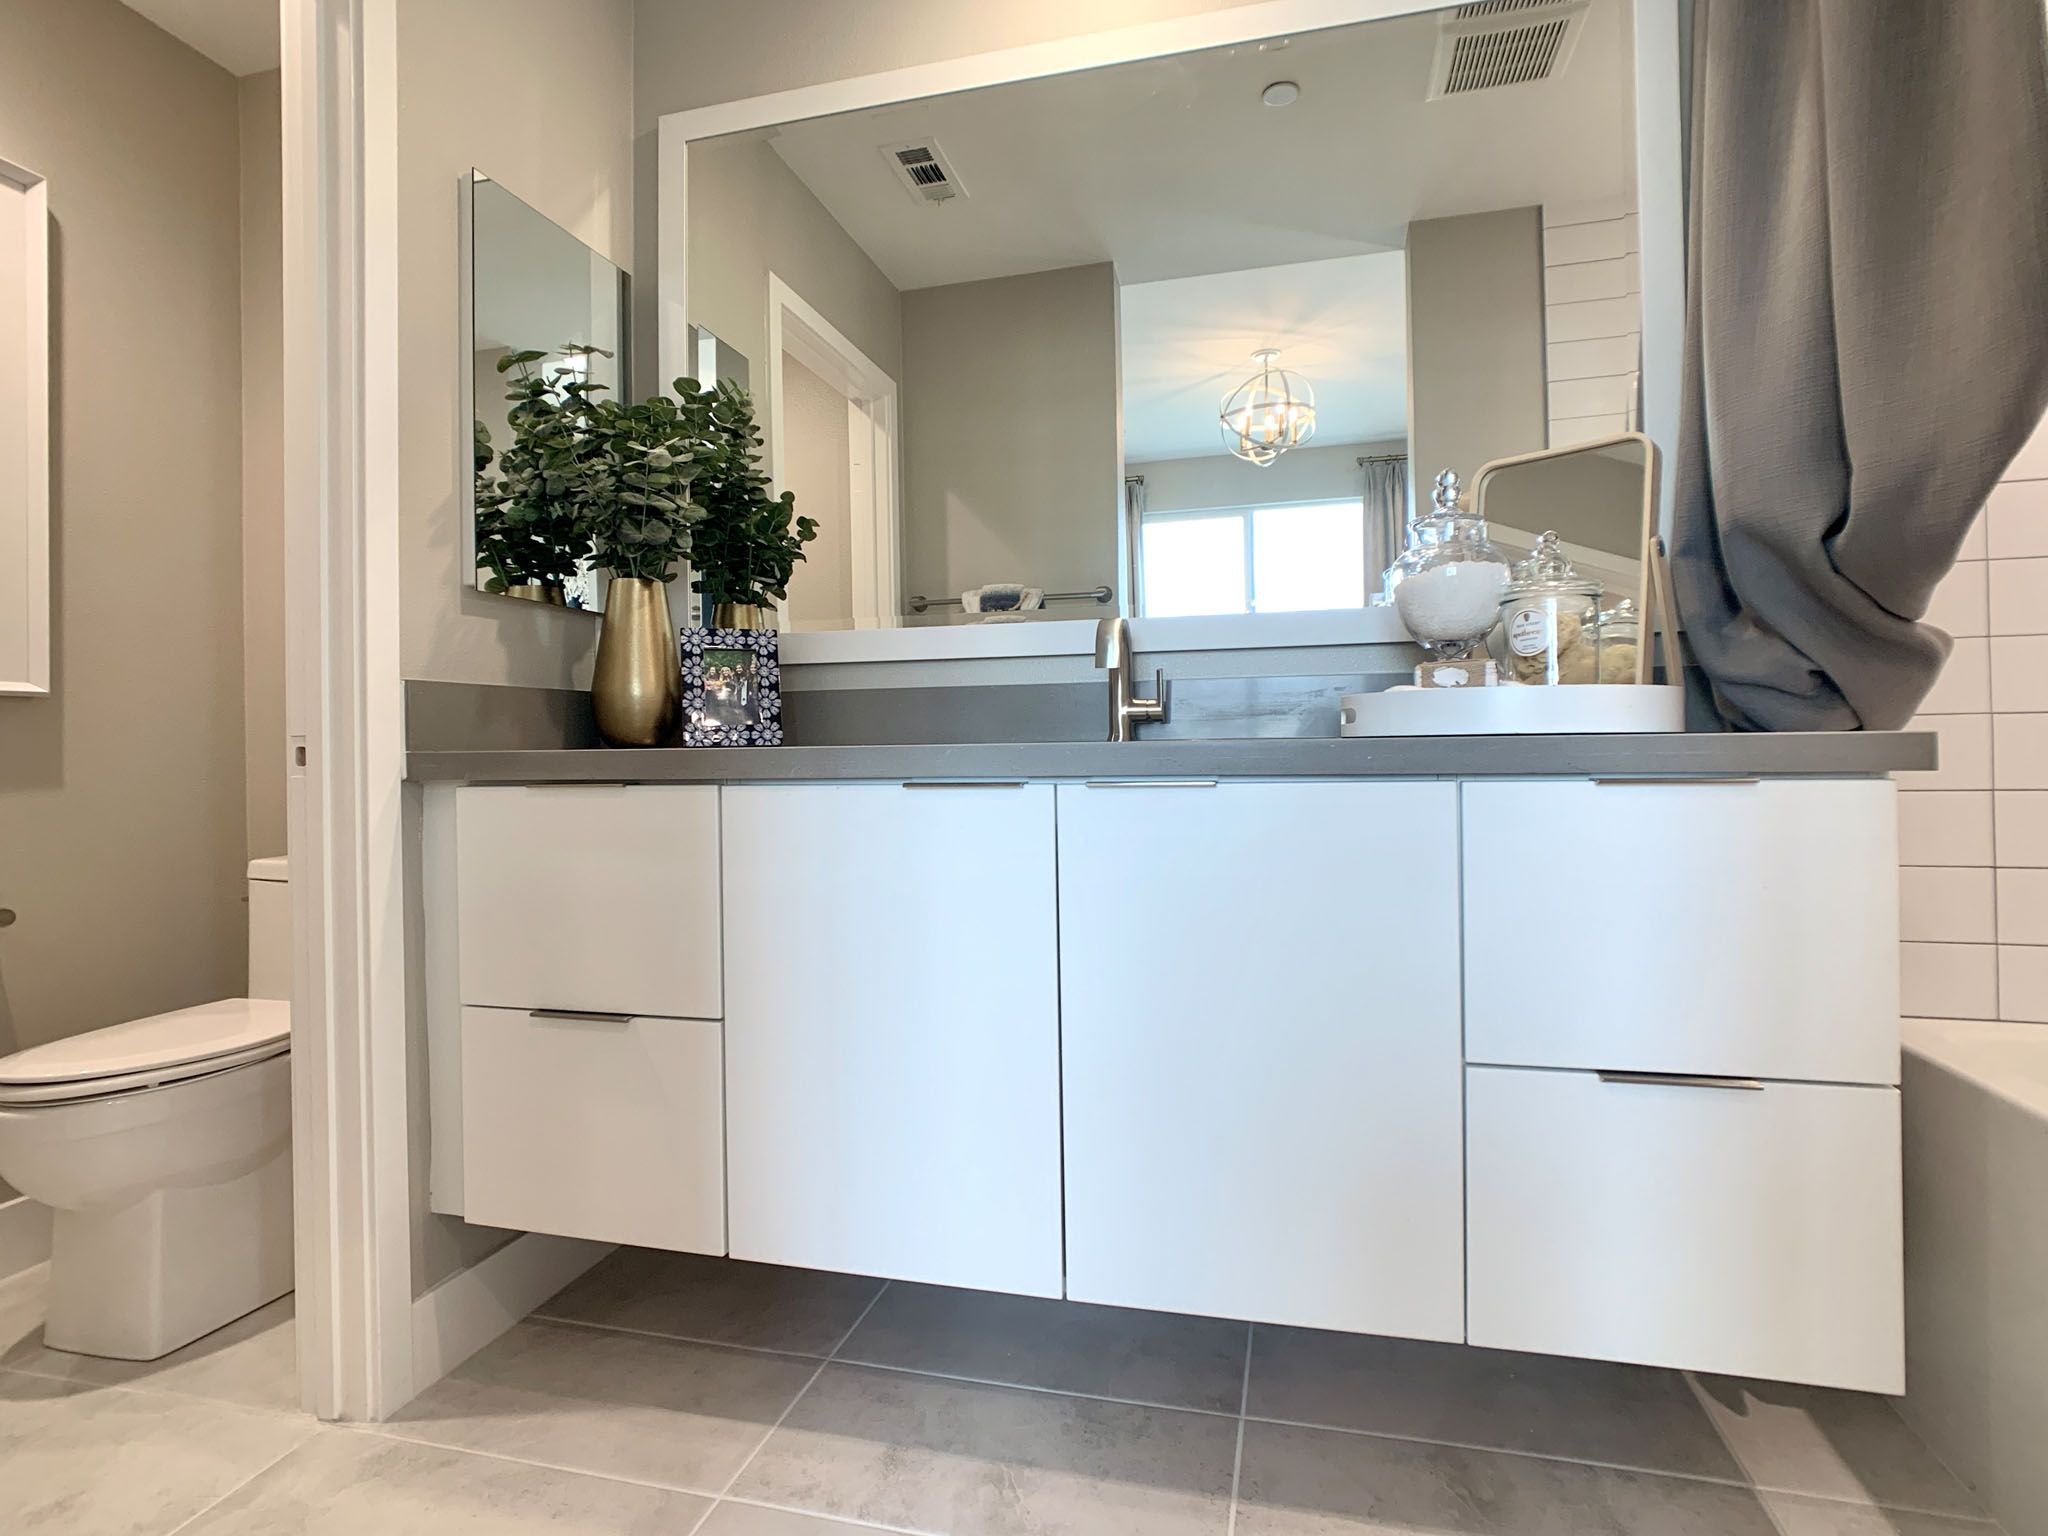 Bathroom featured in the Plan Three By Williams Homes in Los Angeles, CA